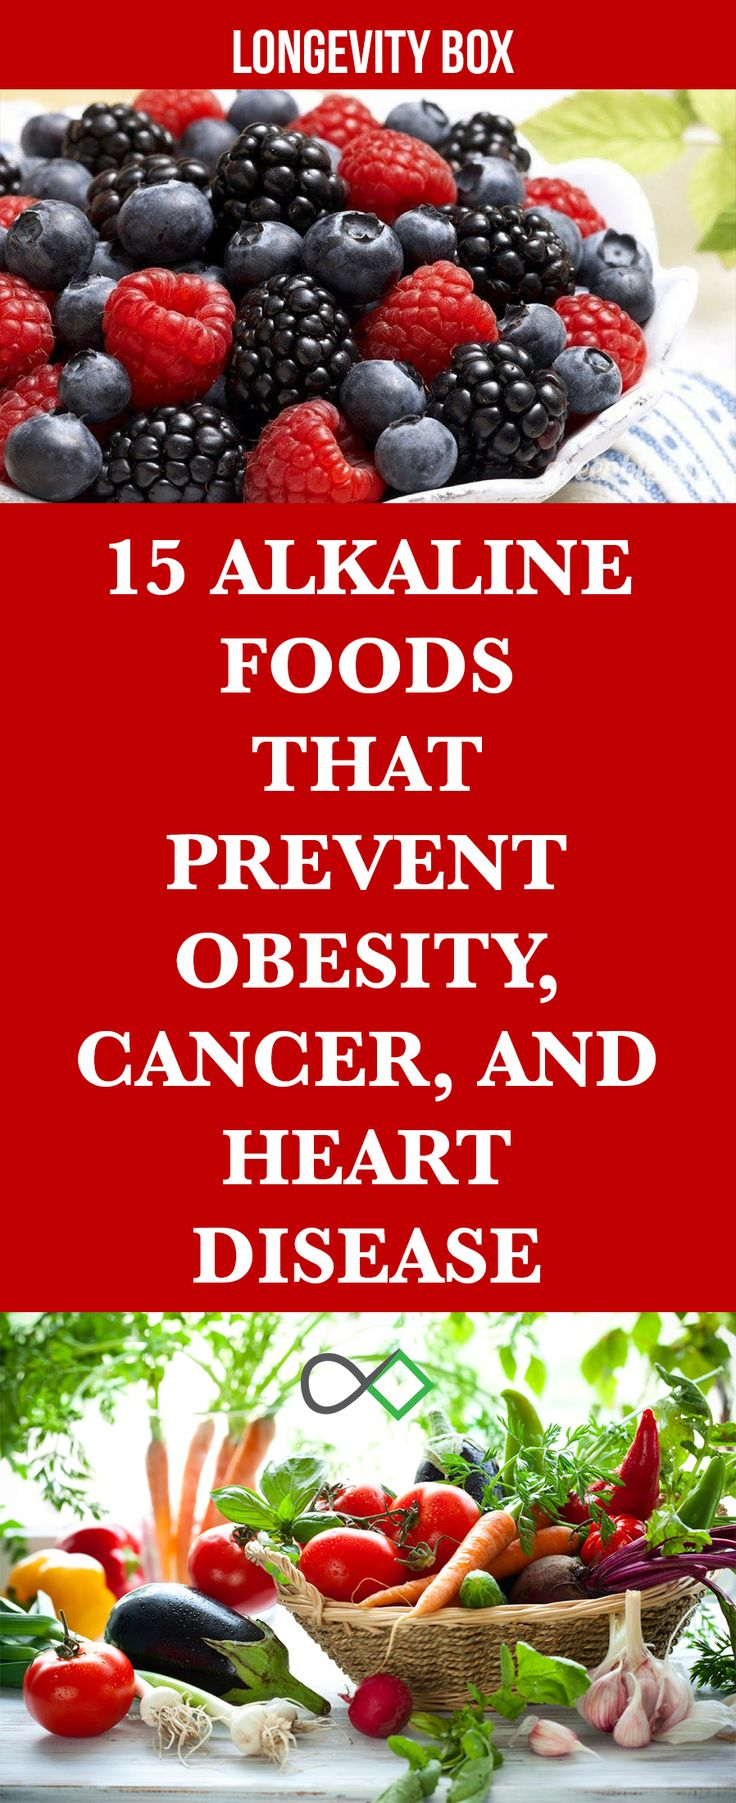 15 ALKALINE FOODS THAT PREVENT OBESITY, CANCER, AND HEART DISEASE